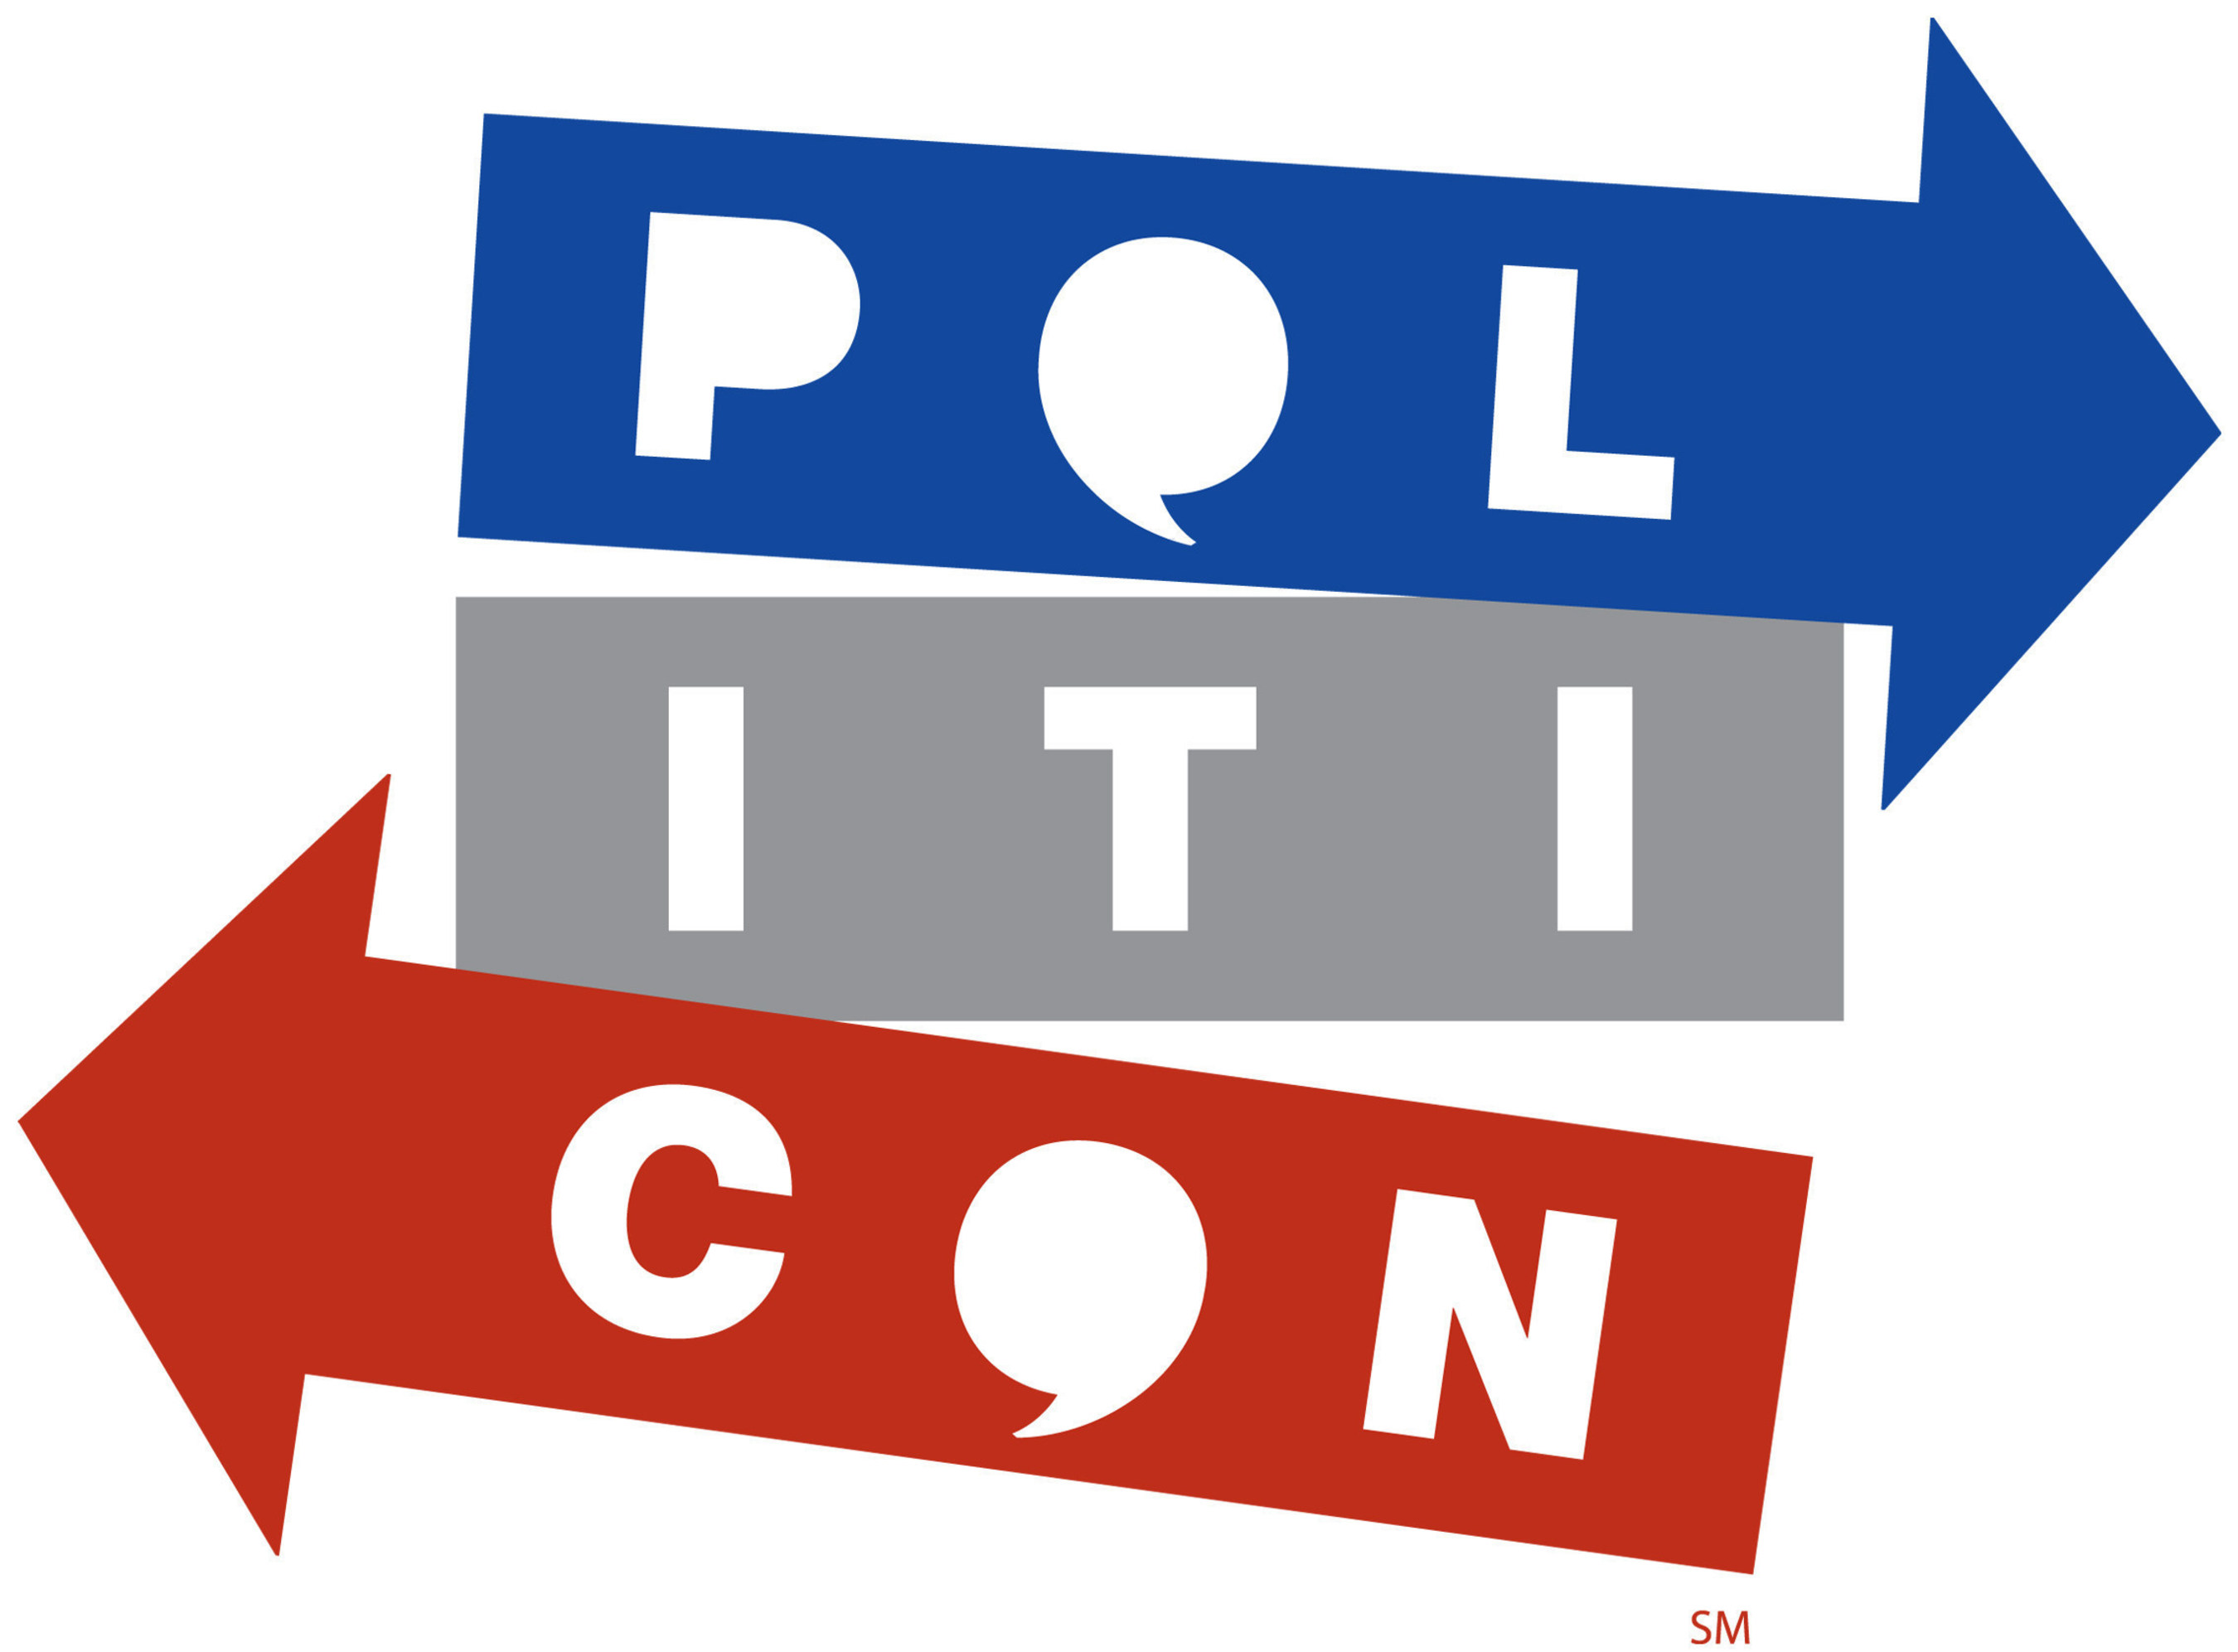 In This Crazy Political Year, Politicon Plays Up The Funny, Puts Odd Couples Together, Captures The Nation's Mood